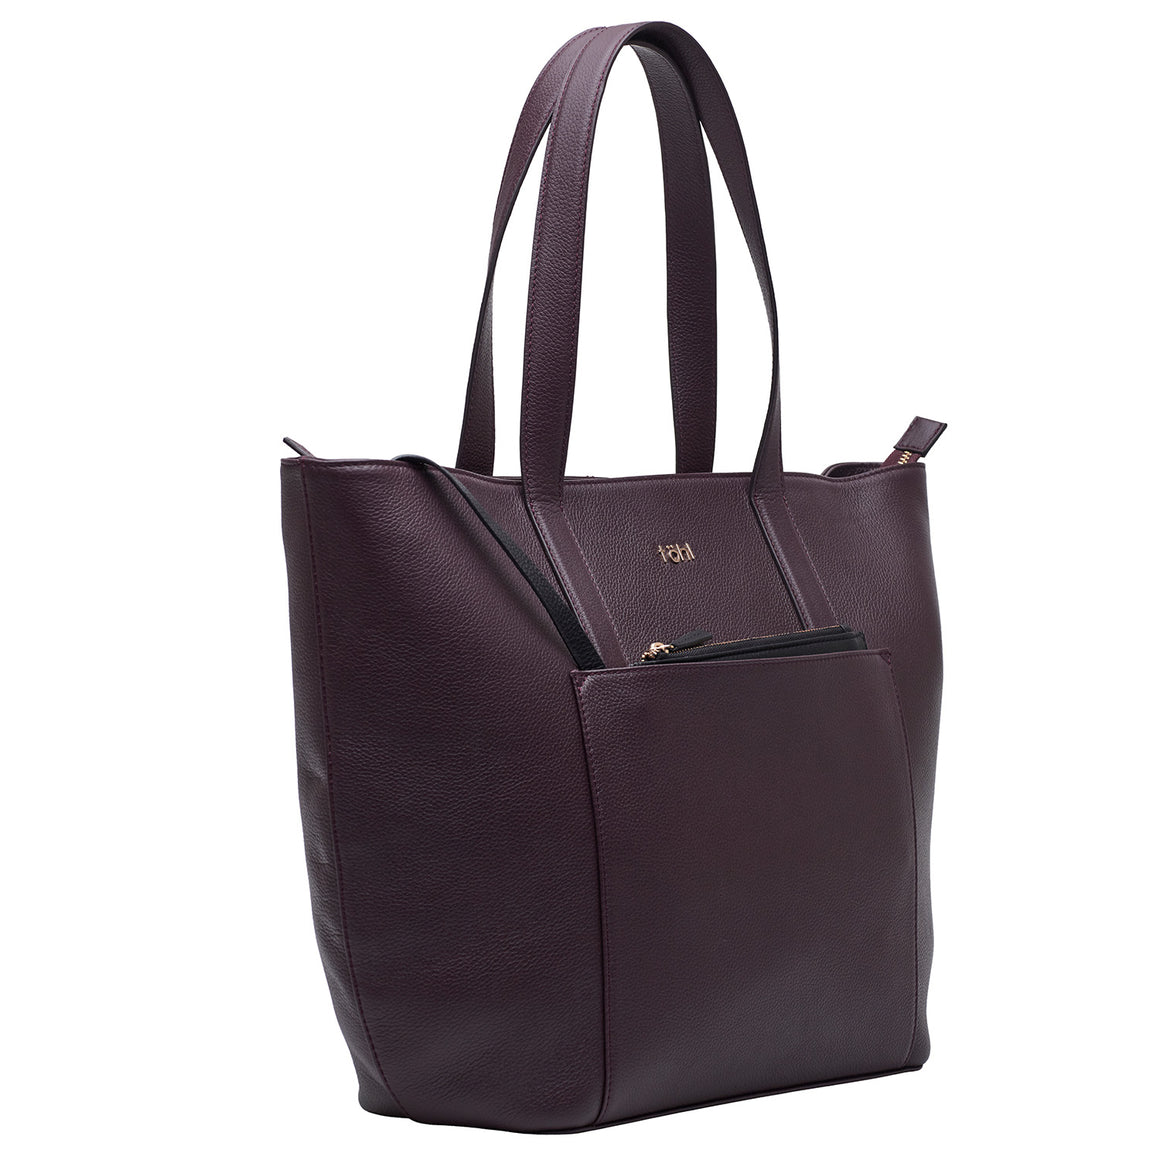 TT 0010 - TOHL LUSH WOMEN'S TOTE BAG - PLUM